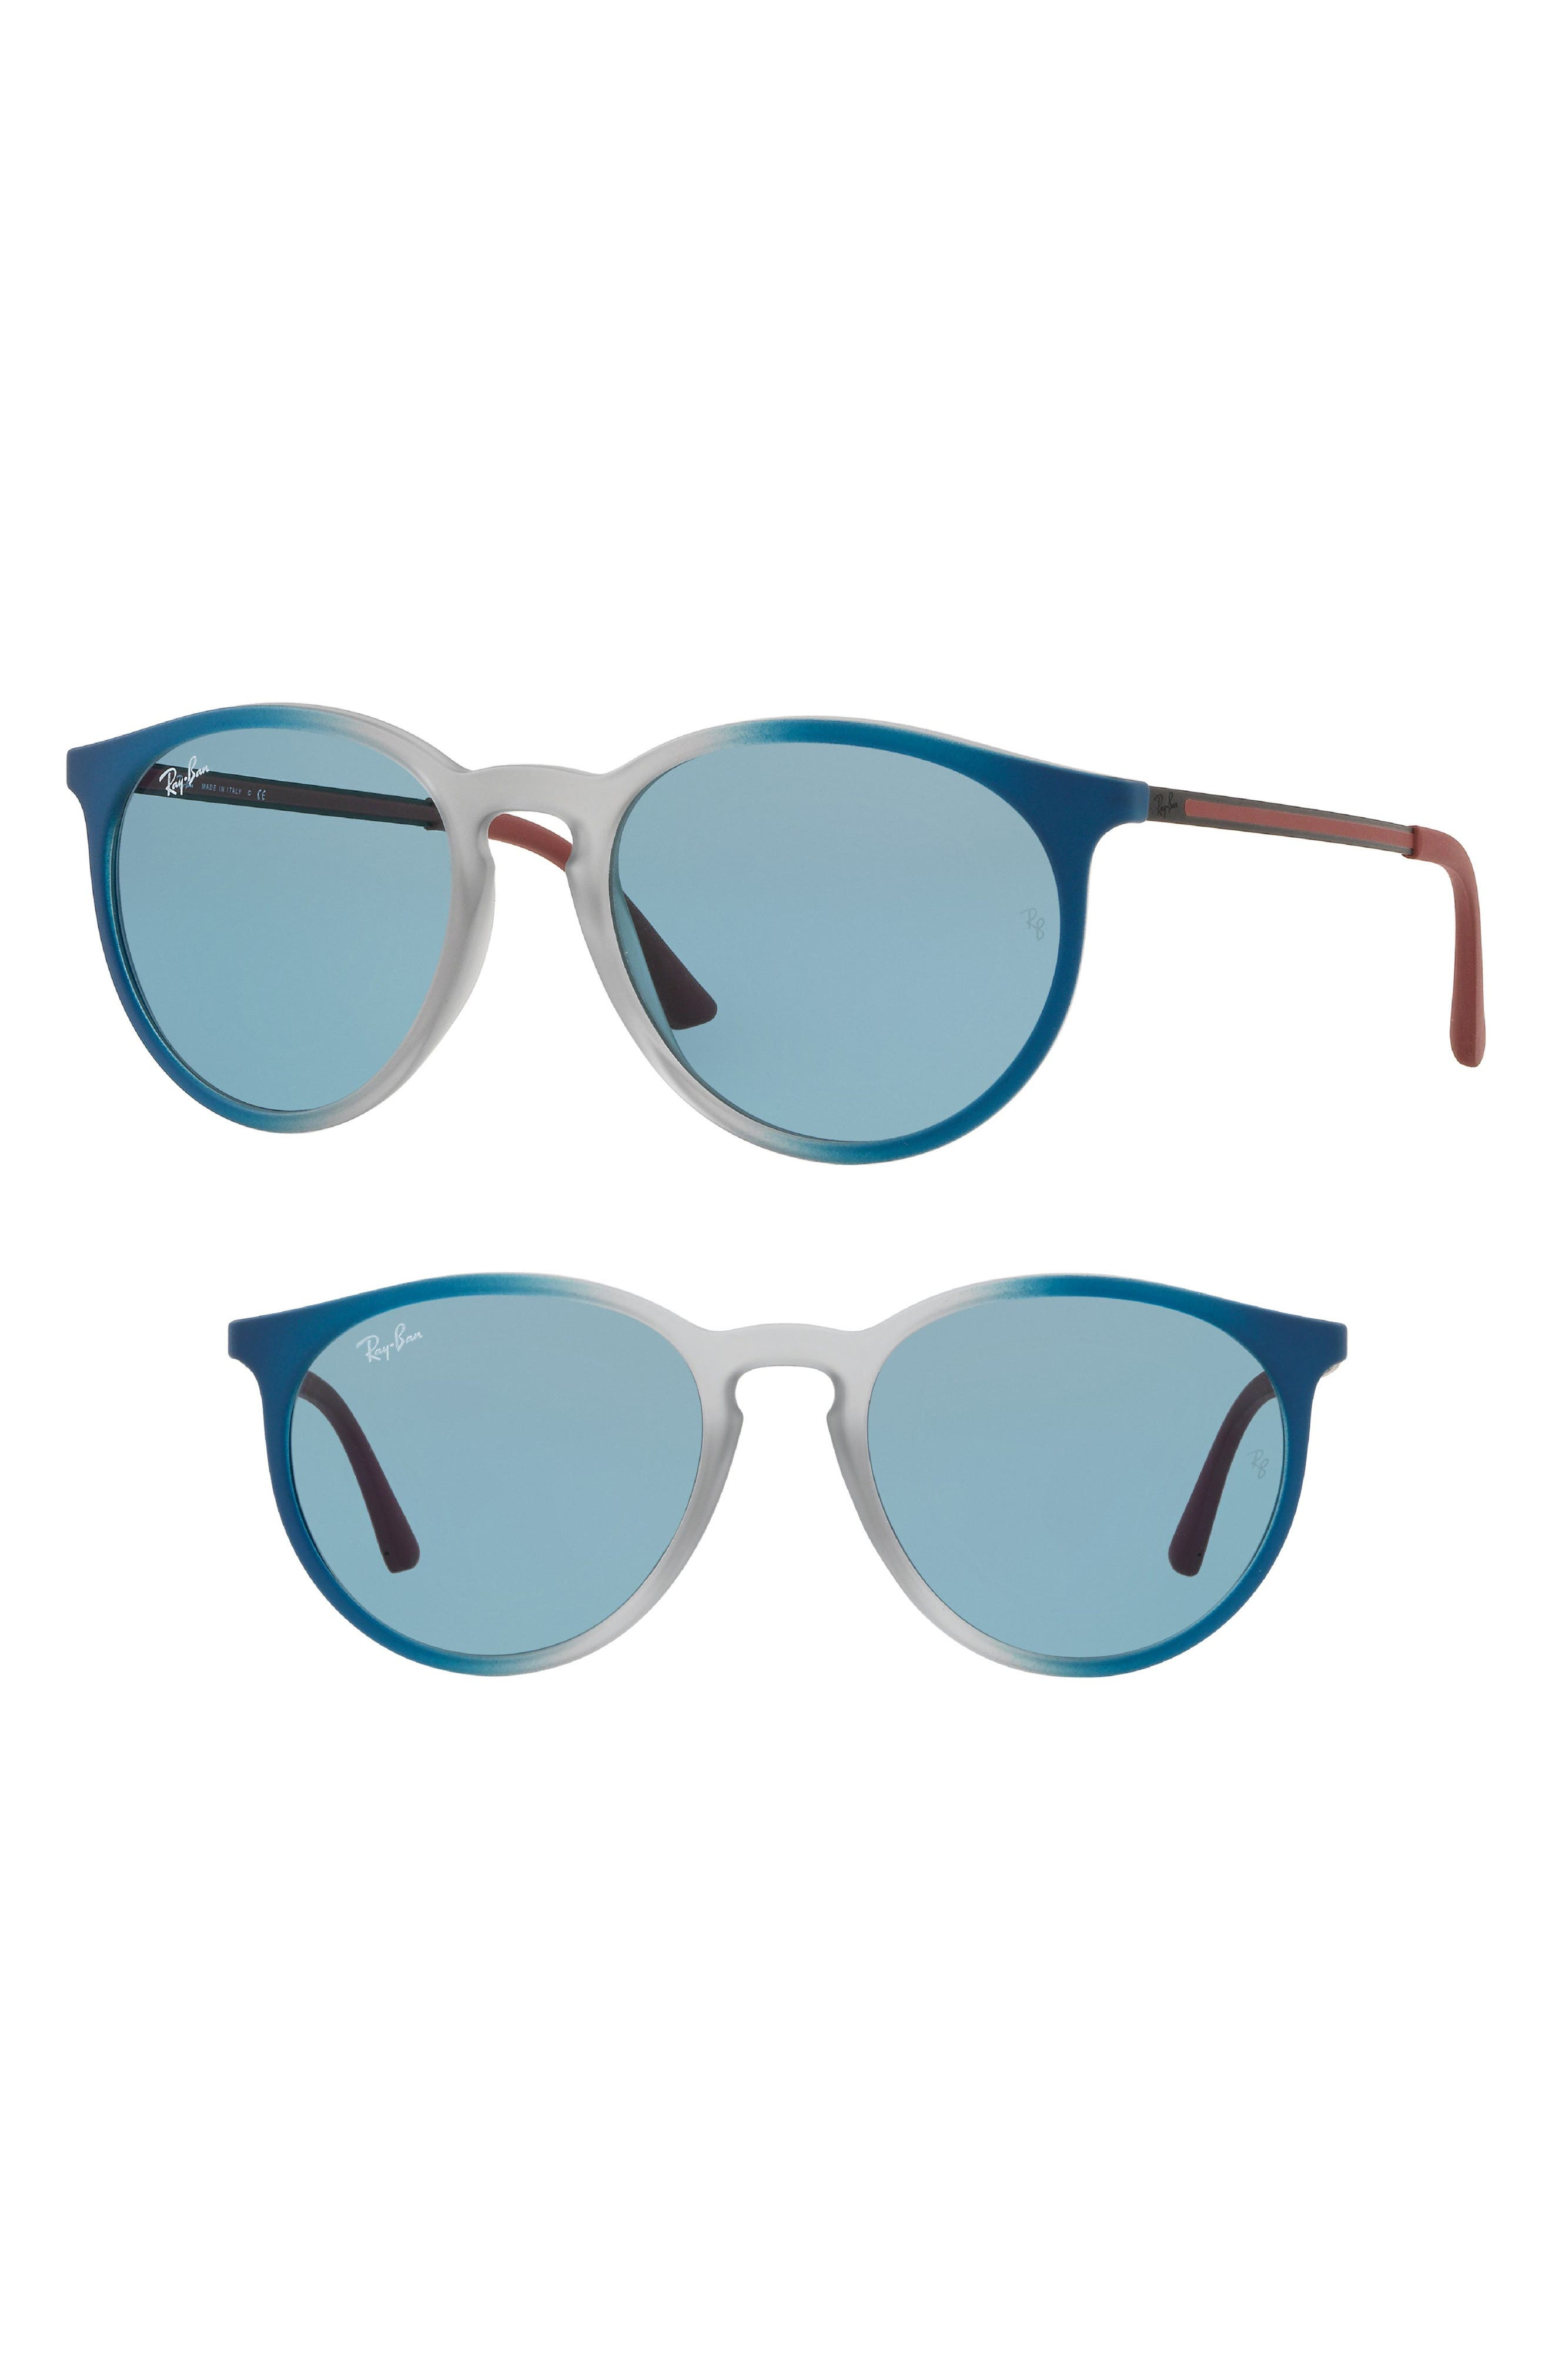 Youngster 53mm Round Sunglasses,                             Main thumbnail 1, color,                             428